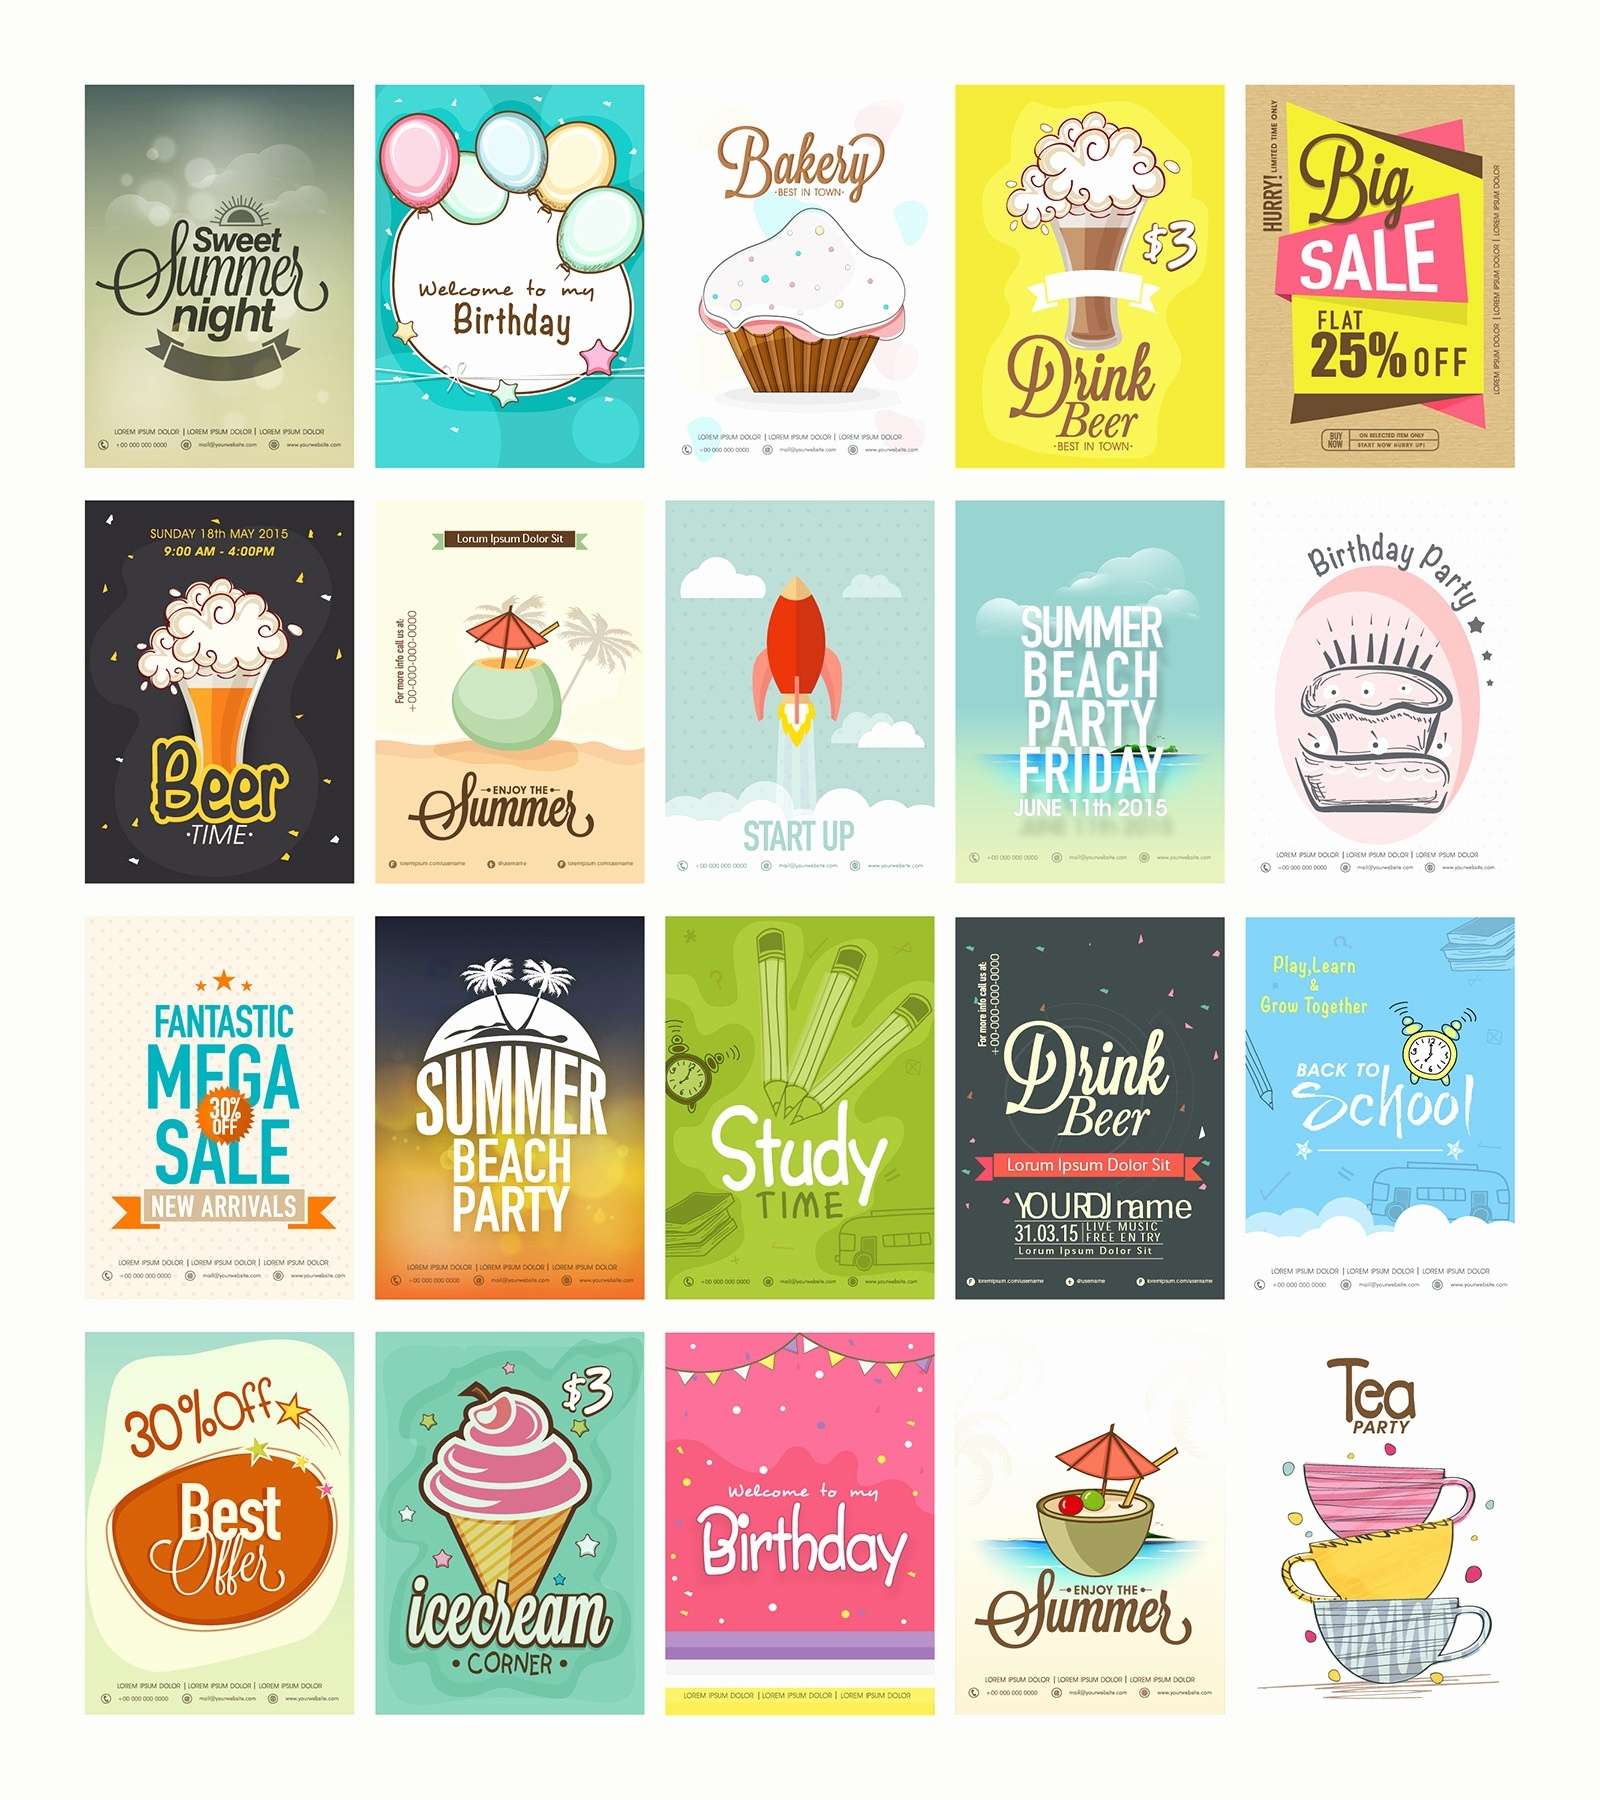 Free Printable Birthday Flyers Beautiful 20 Free Printable Flyers - Free Printable Flyers